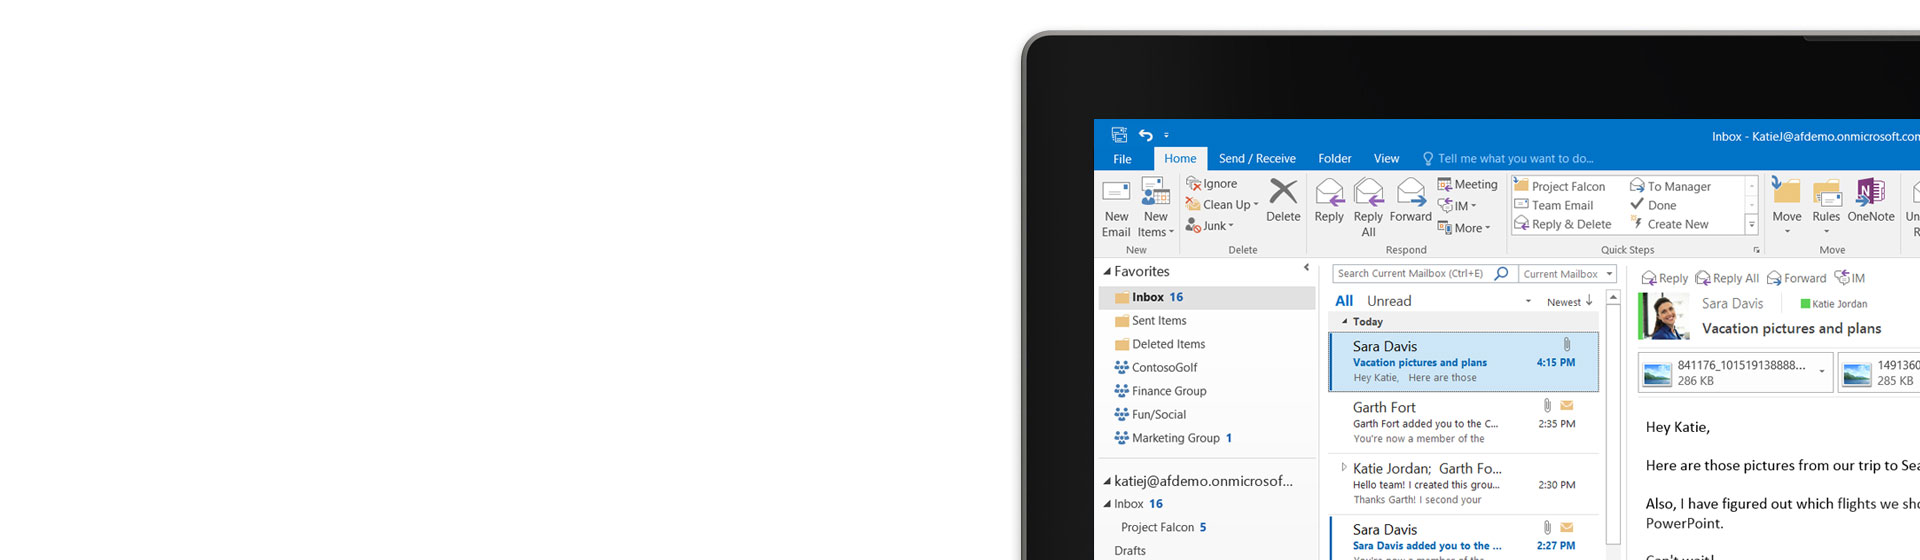 Partial view of desktop version of Microsoft Outlook